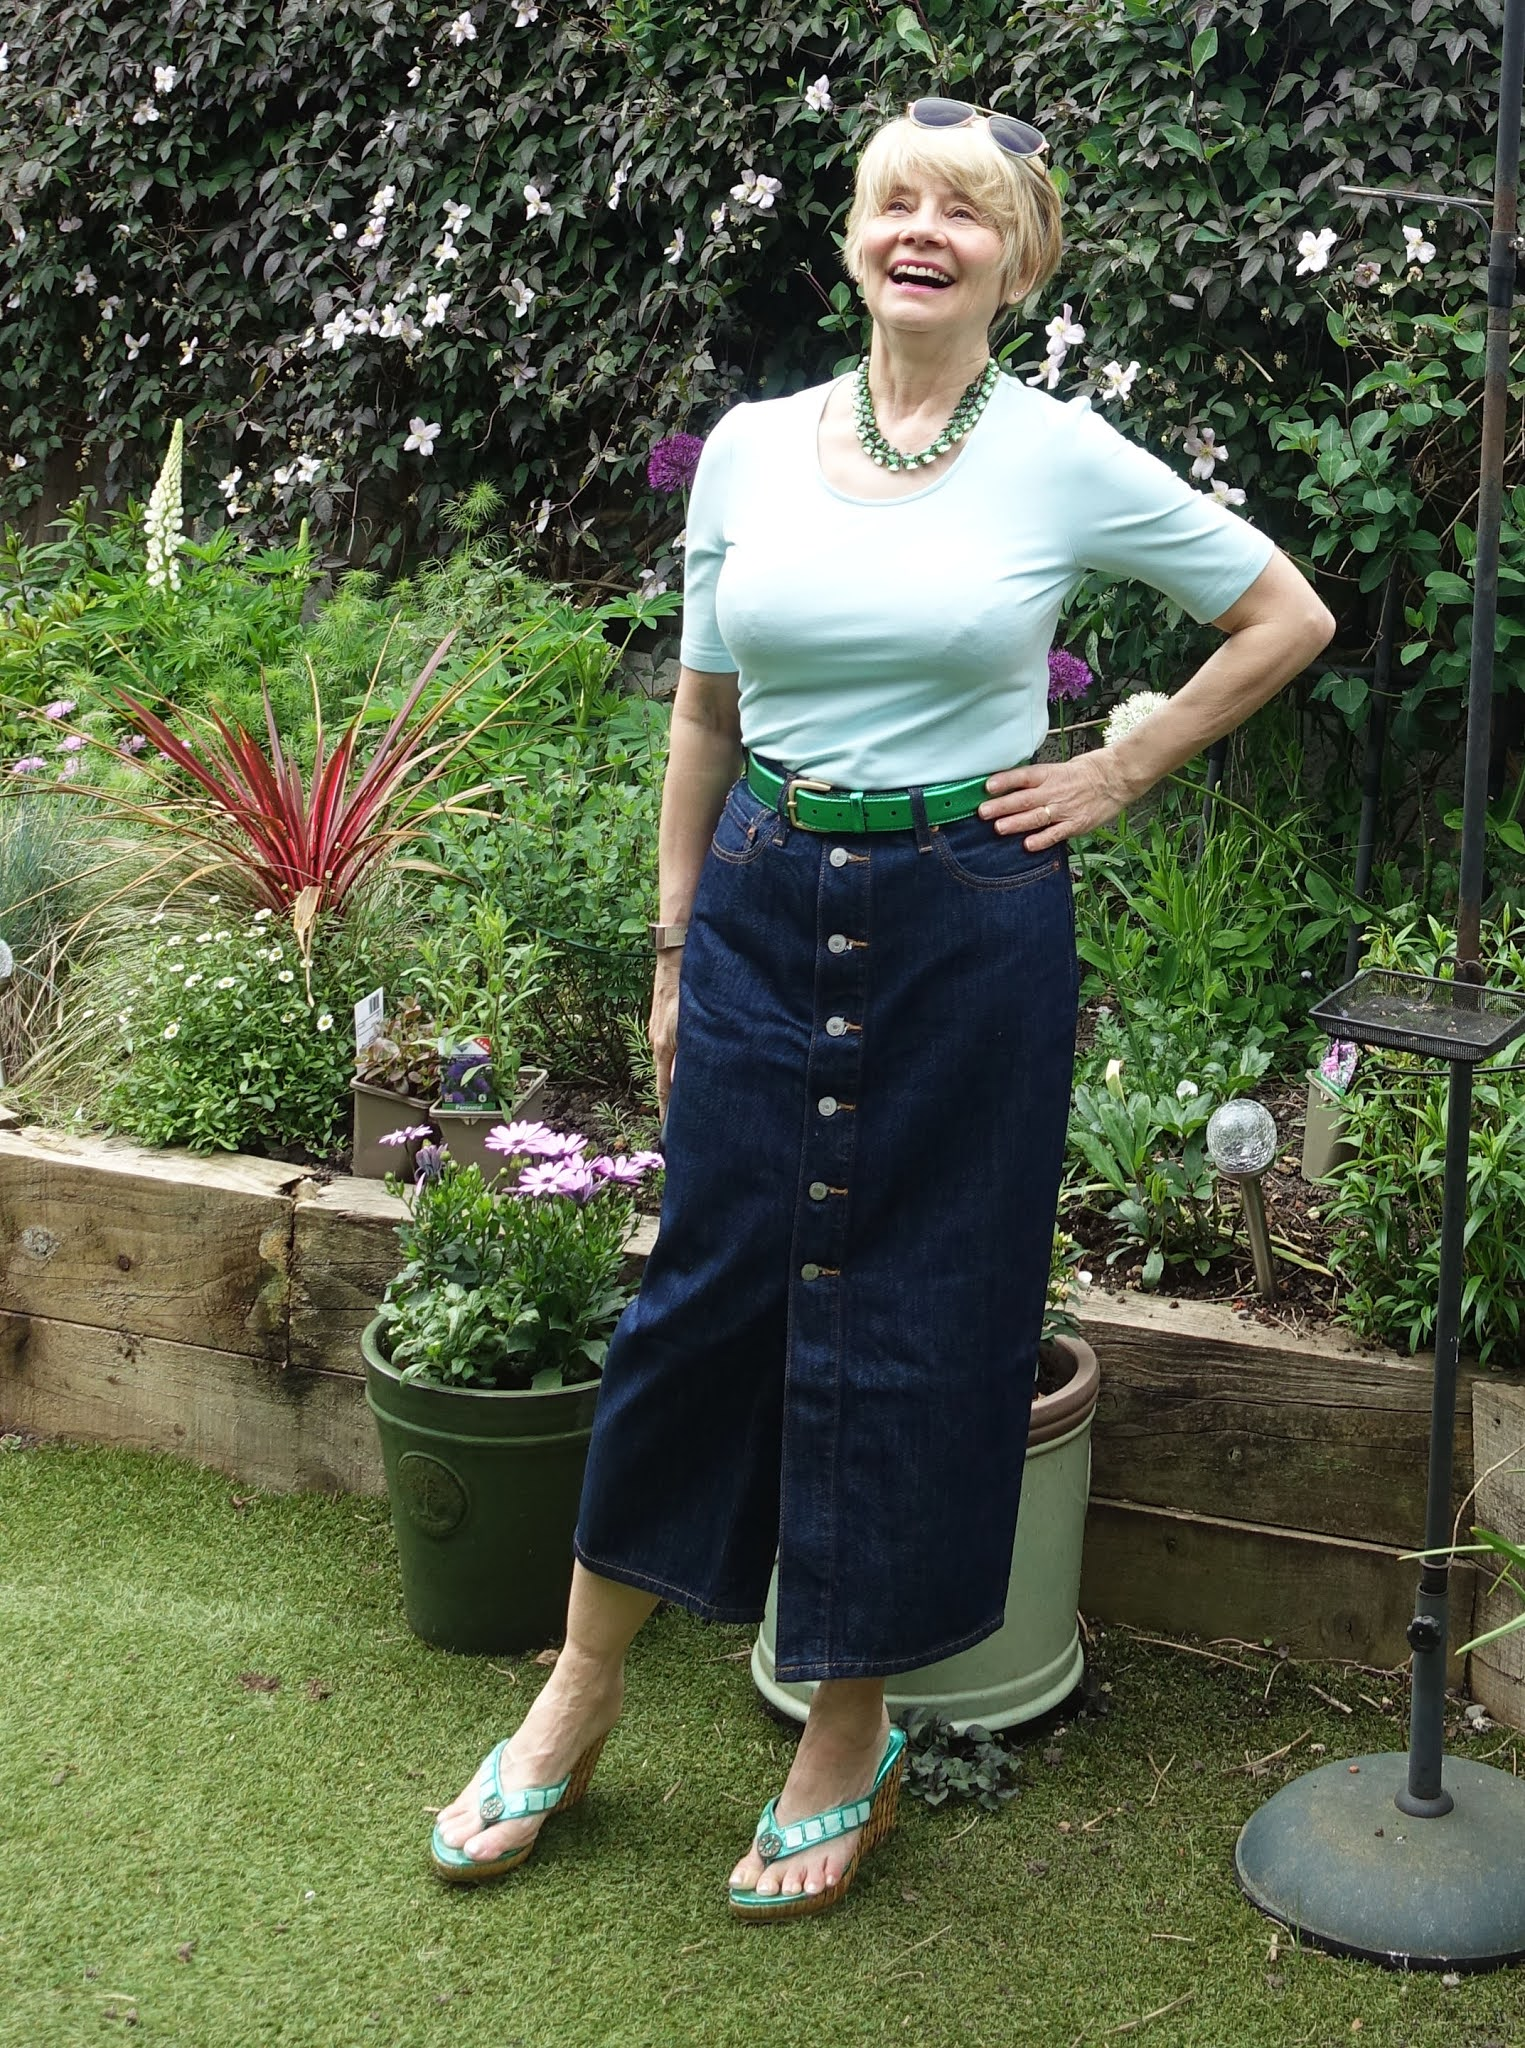 Laughing shot of Gail Hanlon from Is This Mutton in denin midi skirt and light green top with emerald wedges